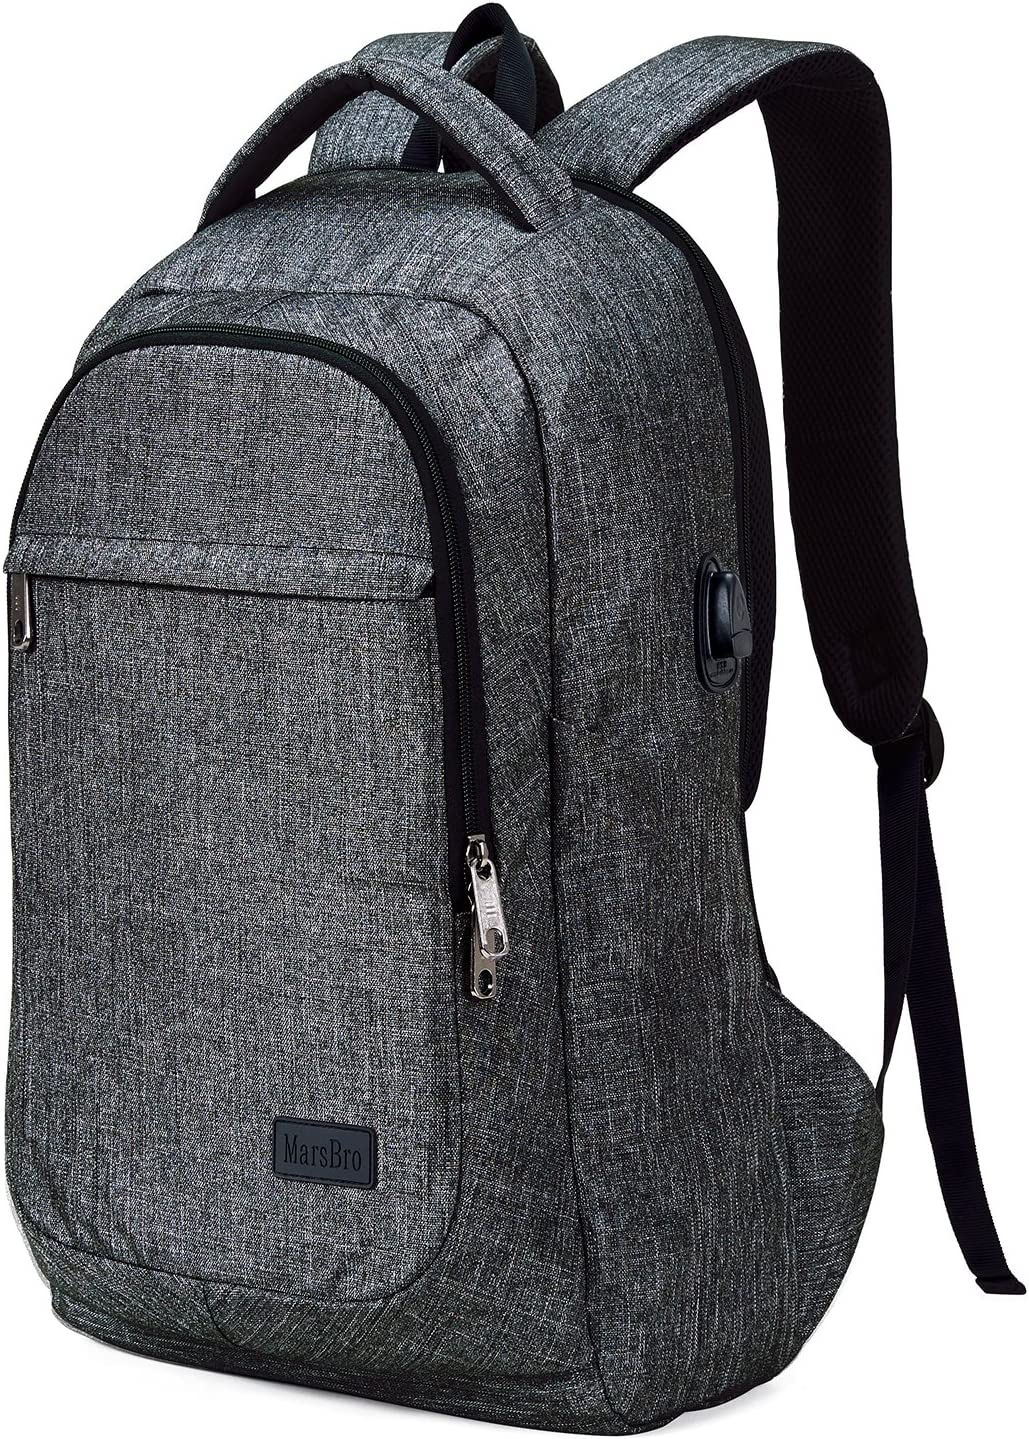 MarsBro Laptop Backpack, Business Travel College Backpack Anti Theft Water Resistant 15.6 Inch Bag for Women Men Grey